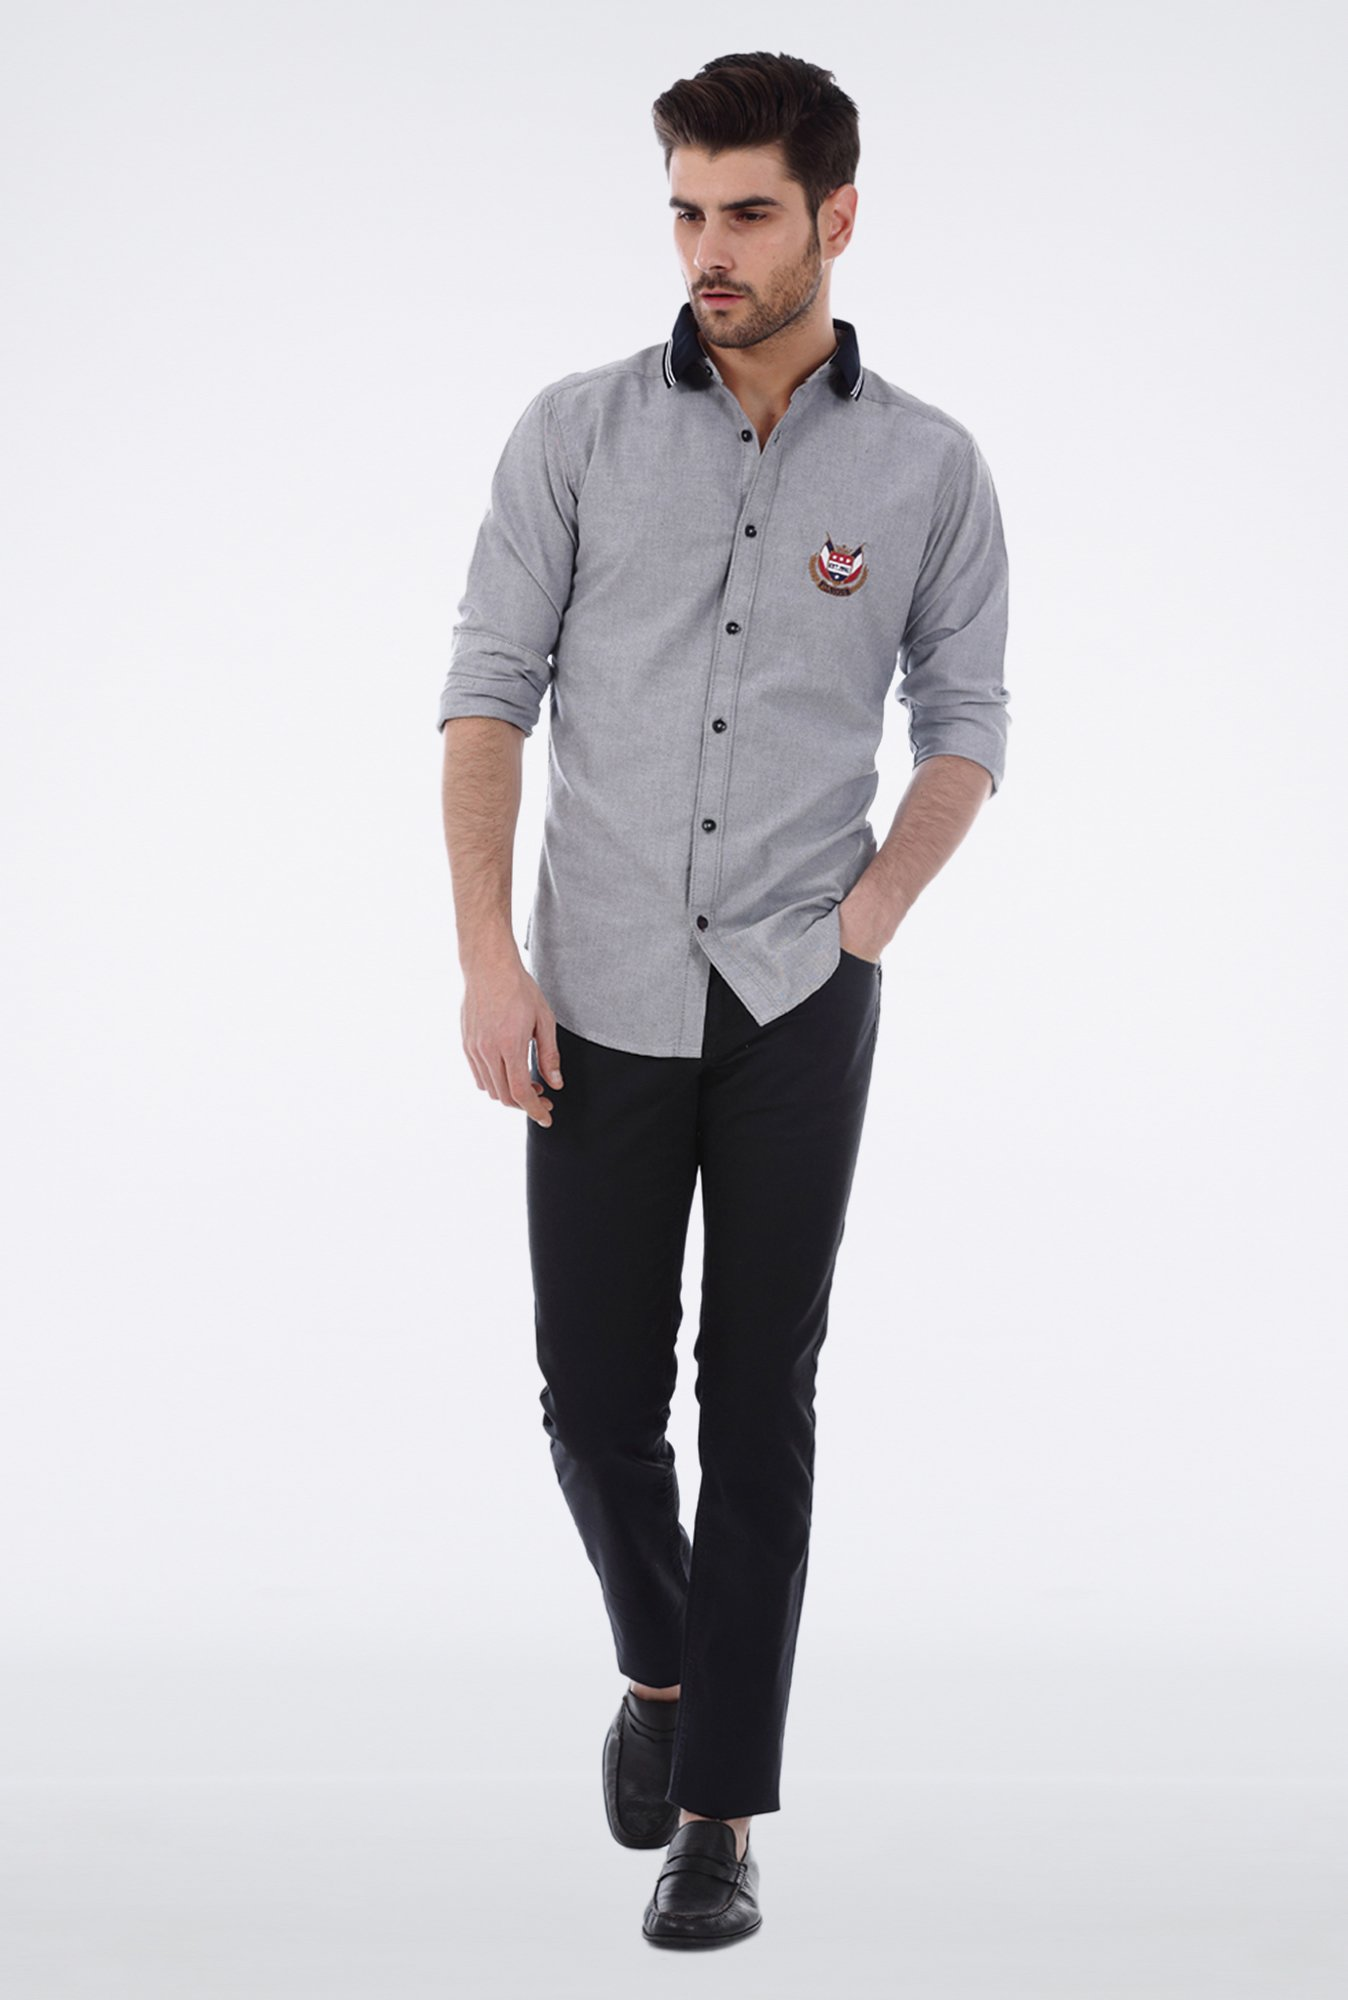 Basics Grey Oxford Weave Shirt